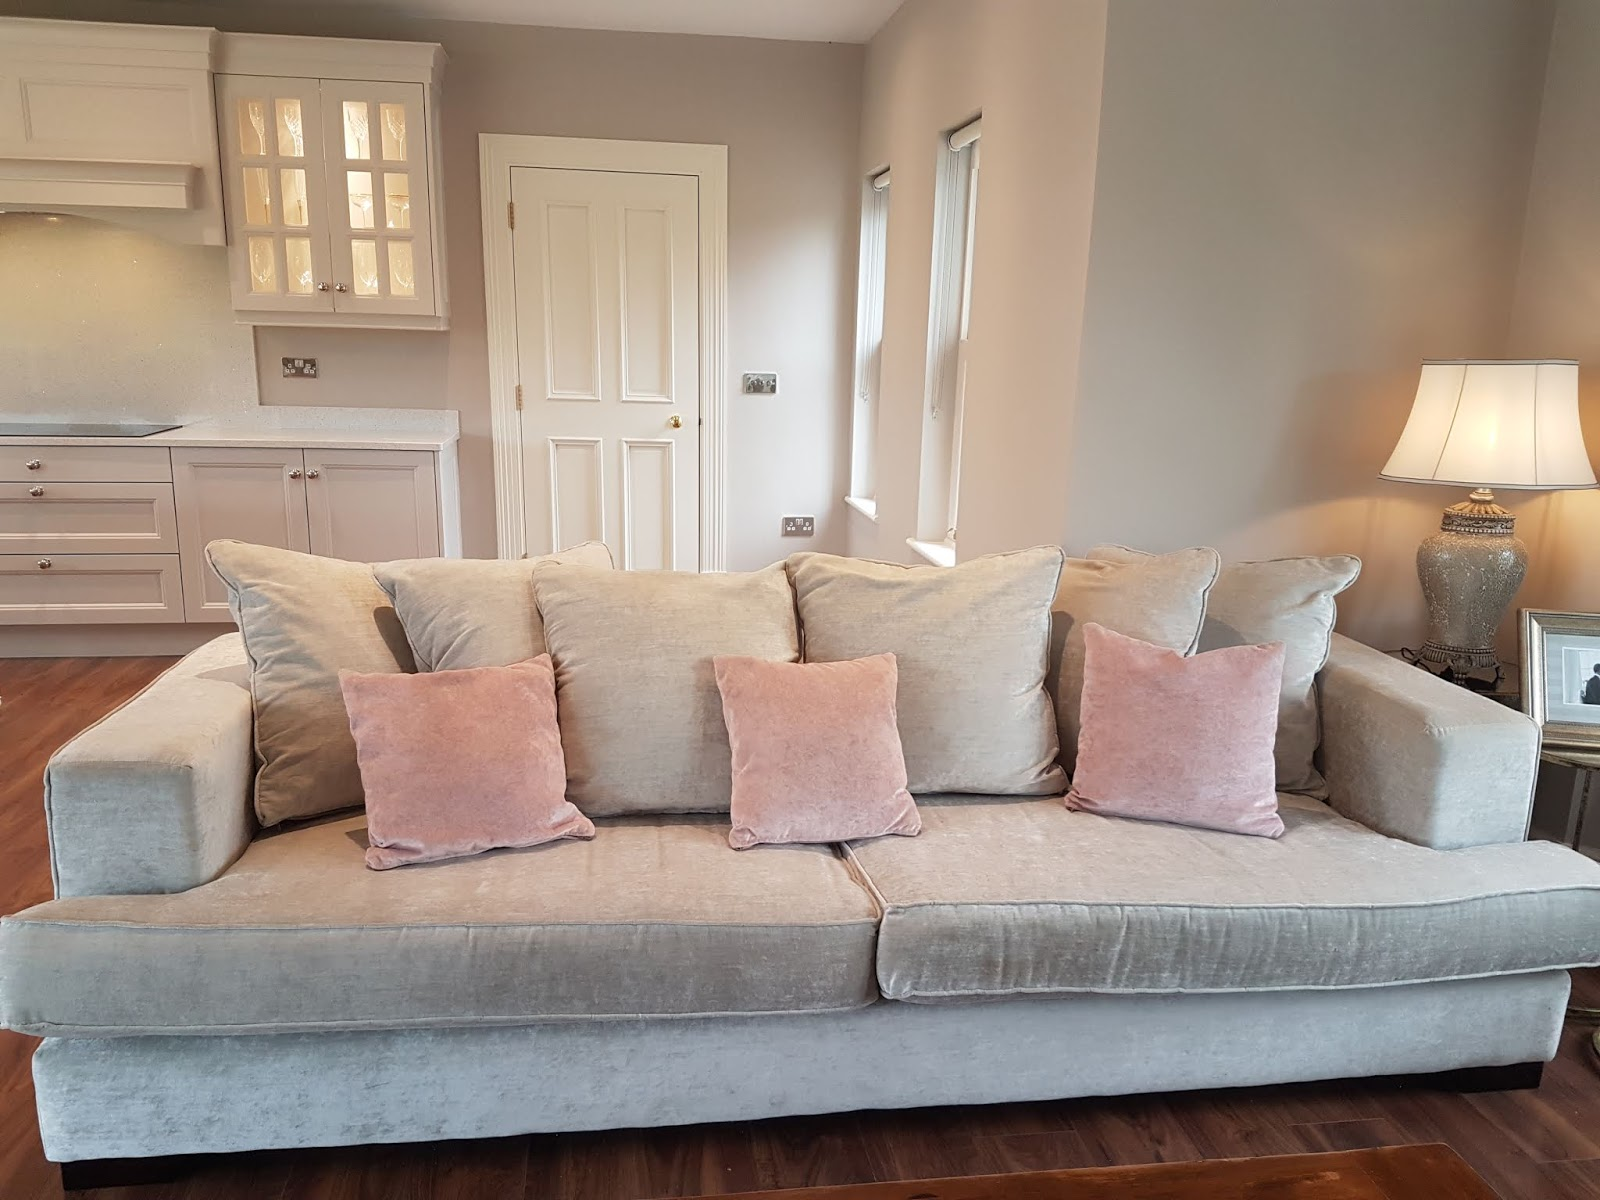 They Are Fab Little Cushions But Just Living With The Couch U0026 In The Space  I Have It In, I Decided That I Needed Cushions With Print U0026 Something That  Could ...